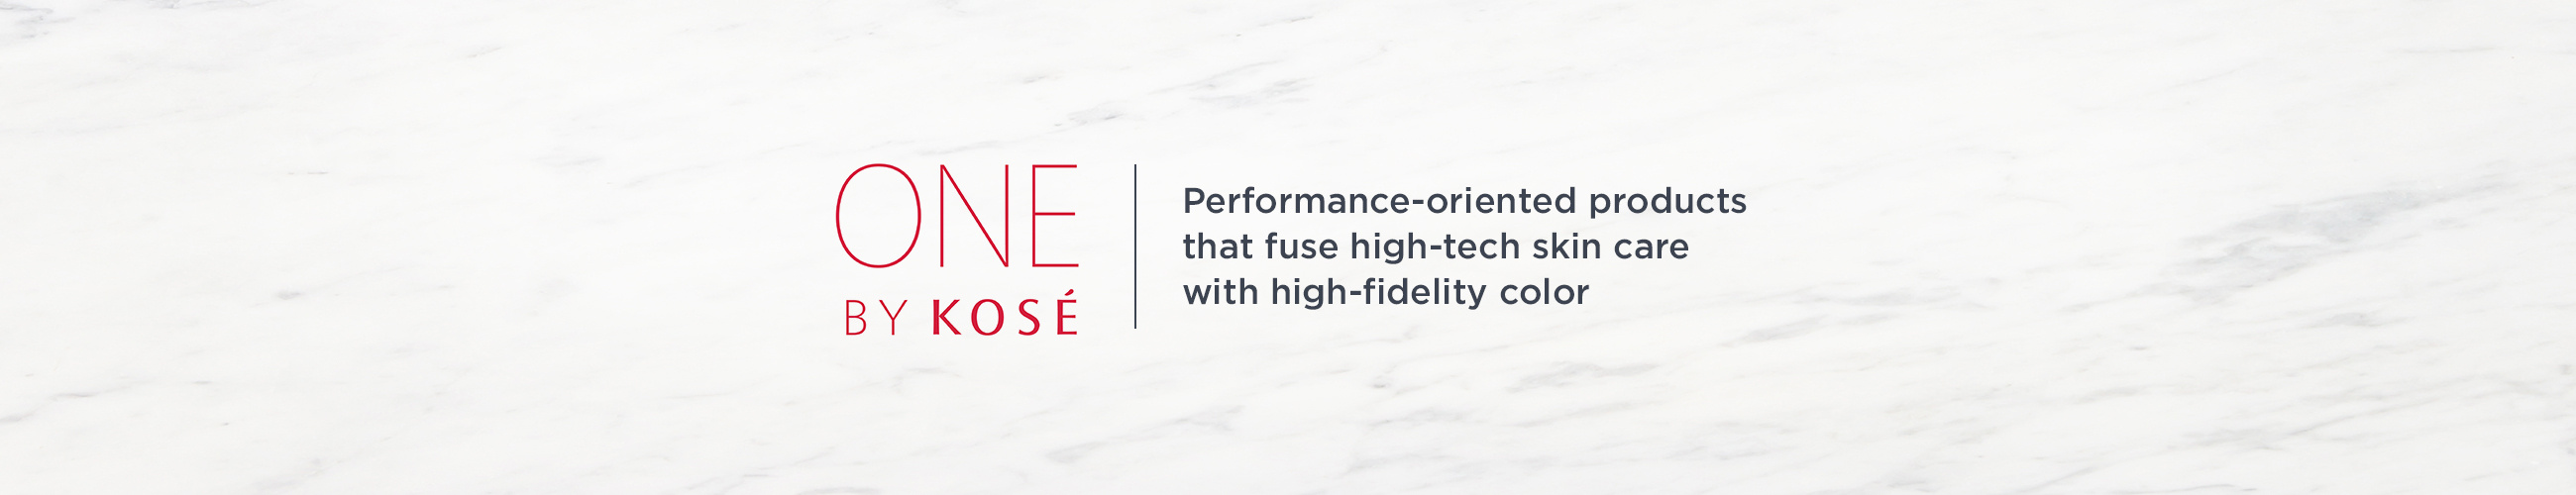 ONE by KOSÉ, Performance-oriented products that fuse high-tech skin care with high-fidelity color